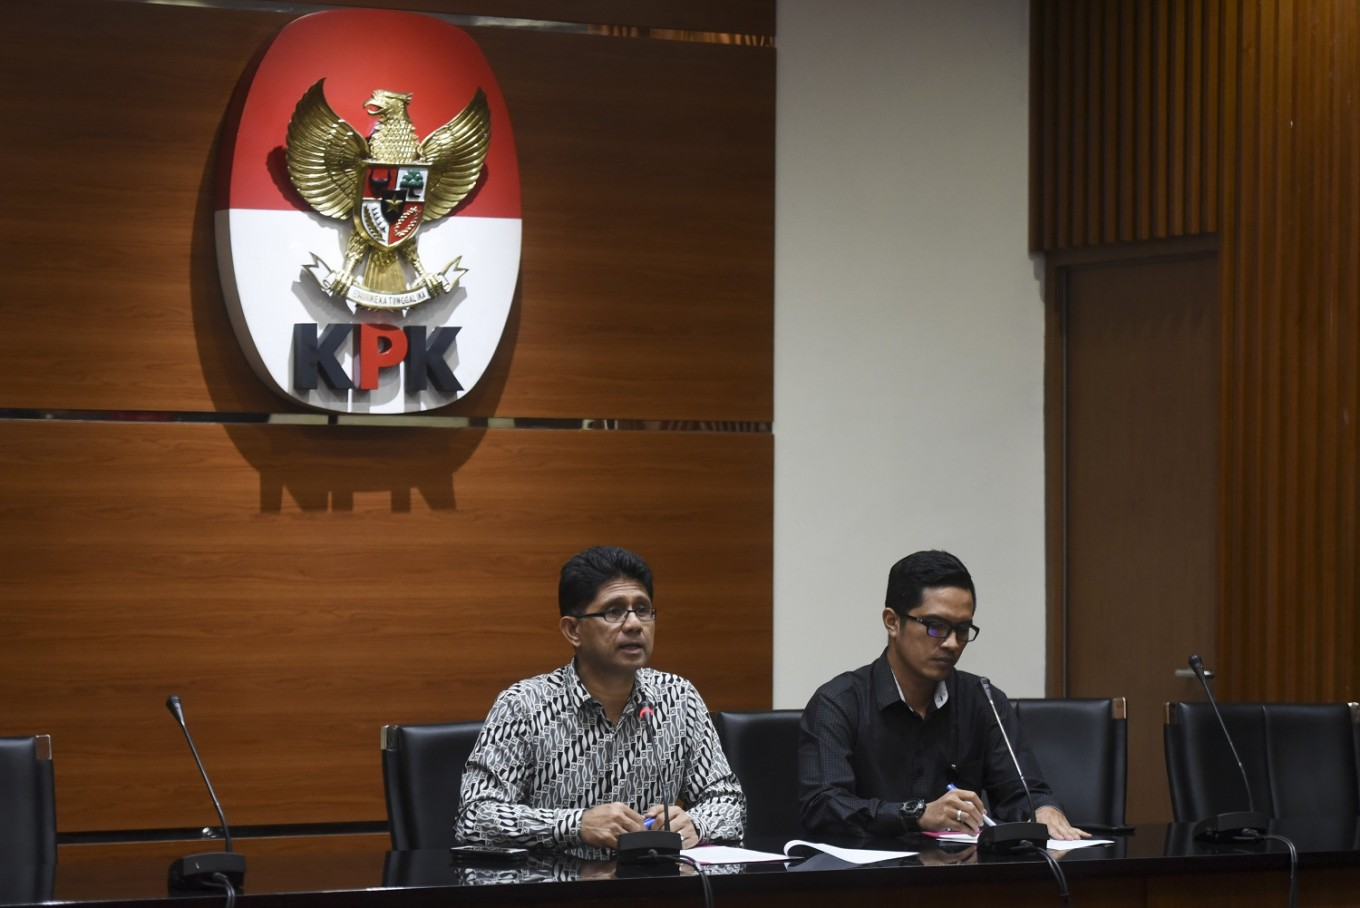 'We have the constitutional right': Antigraft body bigwigs challenge revised KPK Law